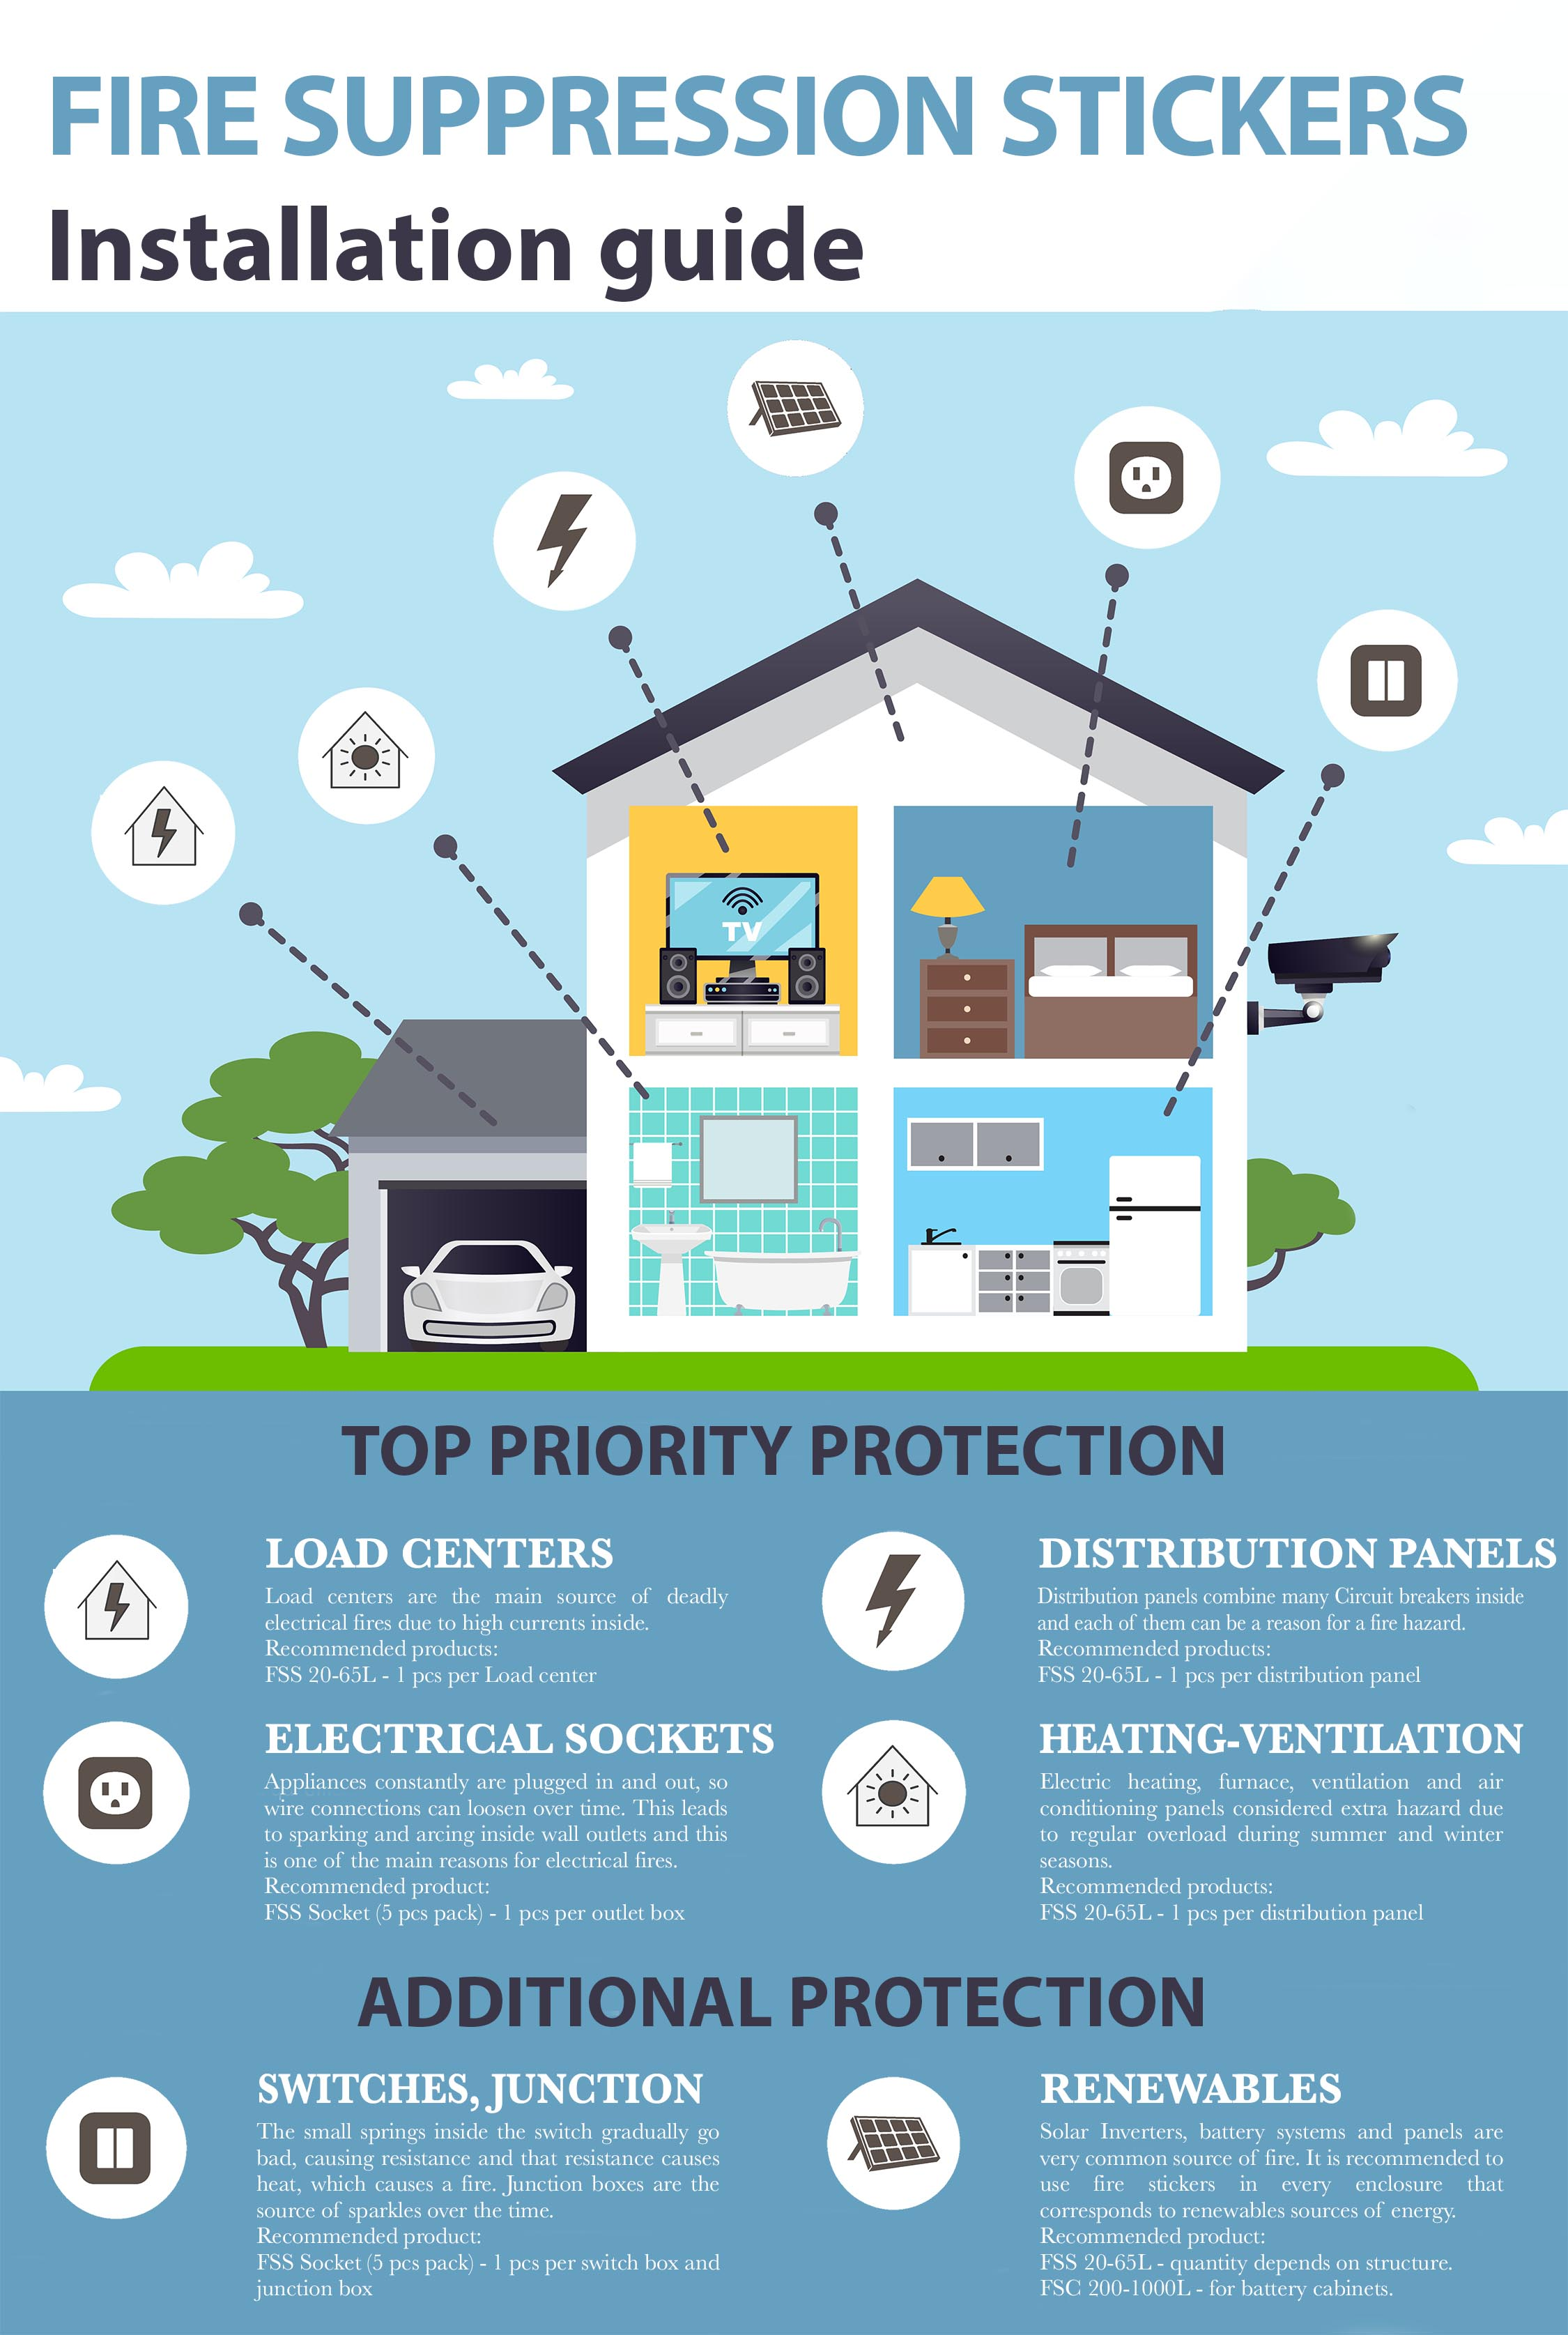 House protection bundles  (FSS bundles)